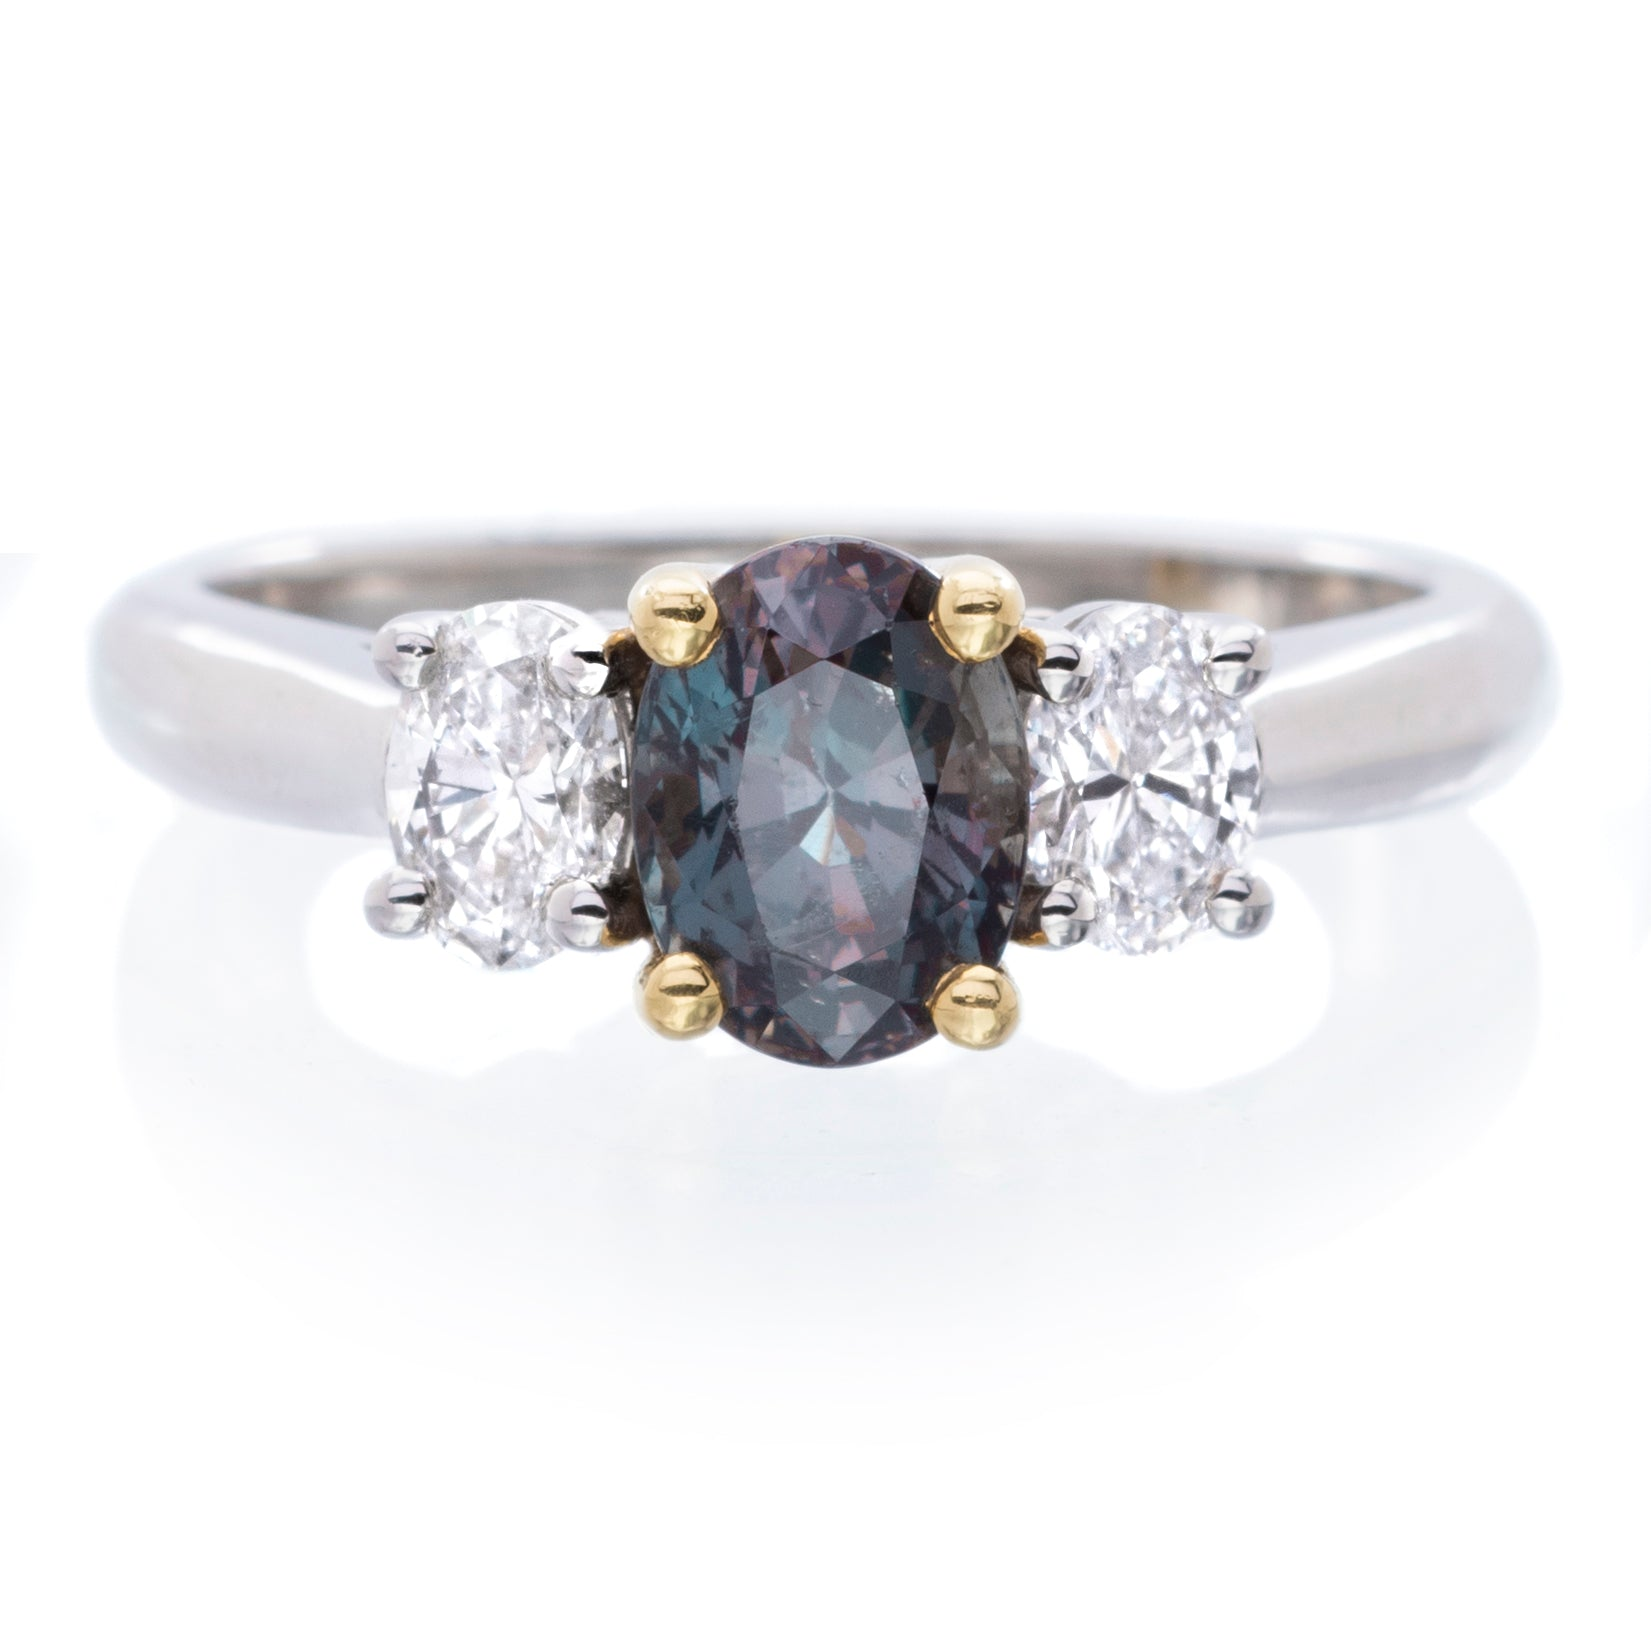 18K Yellow Gold and Platinum Alexandrite Diamond Ring